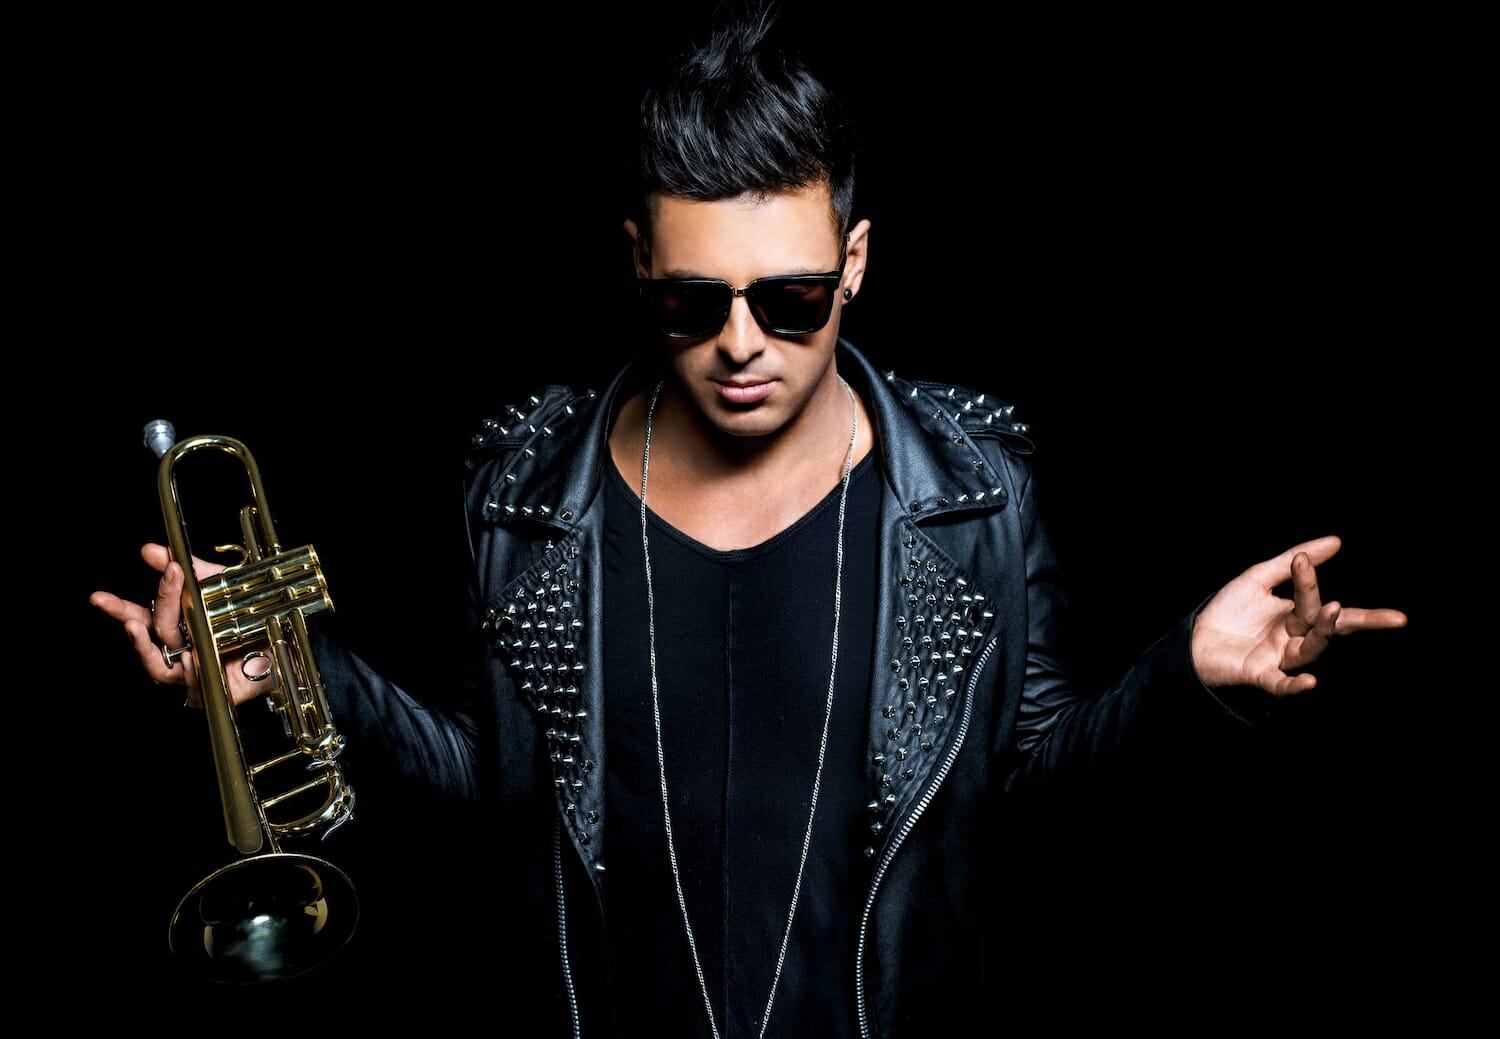 Timmy Trumpet's 'Diamonds' – World's First Music Video Filmed in Isolation to Screen at L.A.'s Dances With FilmsTimmy Trumpet Diamonds Dancing Astronaut